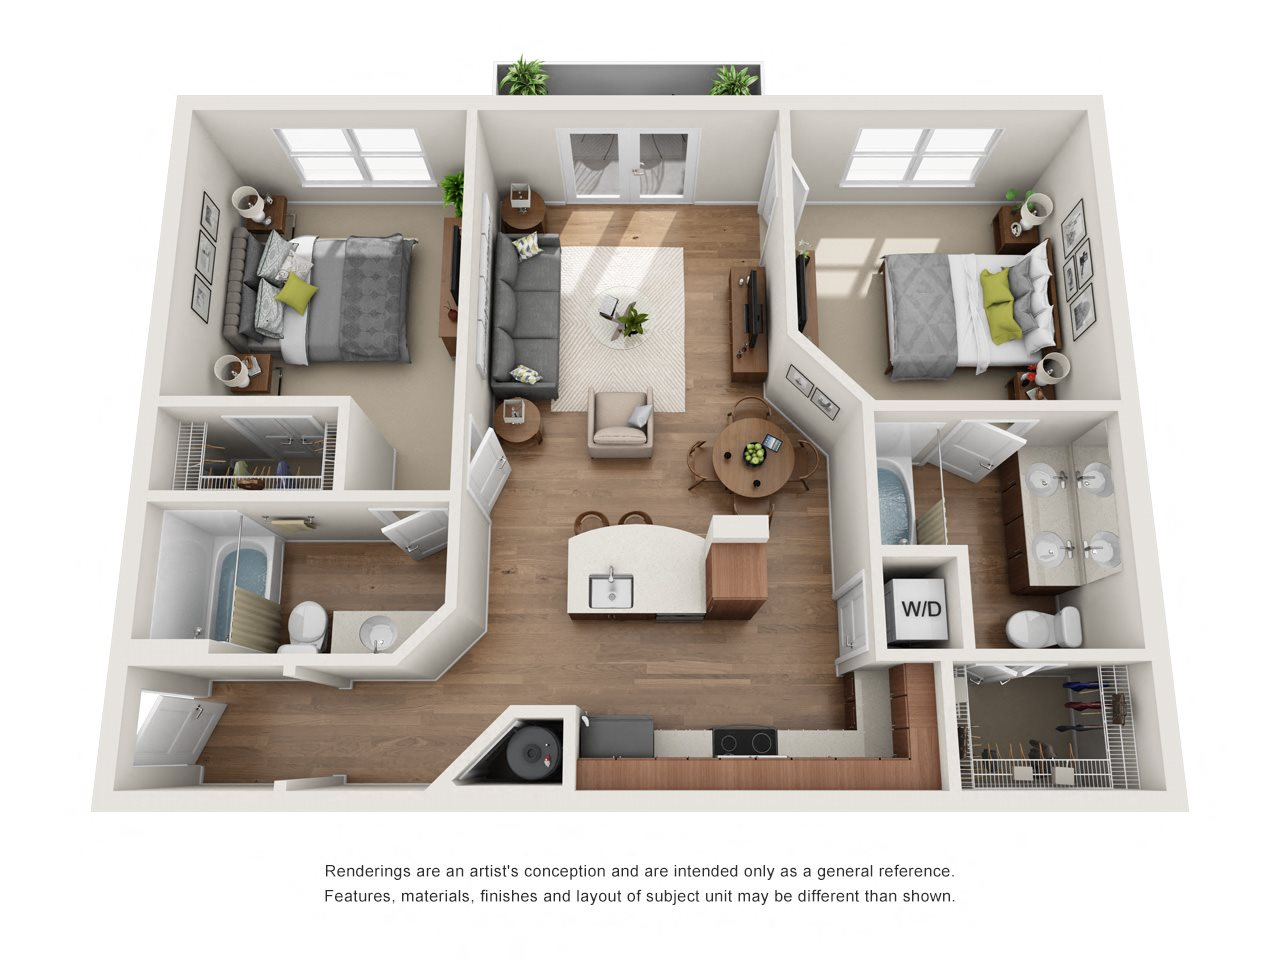 floor plans of river house apartments in baton rouge la